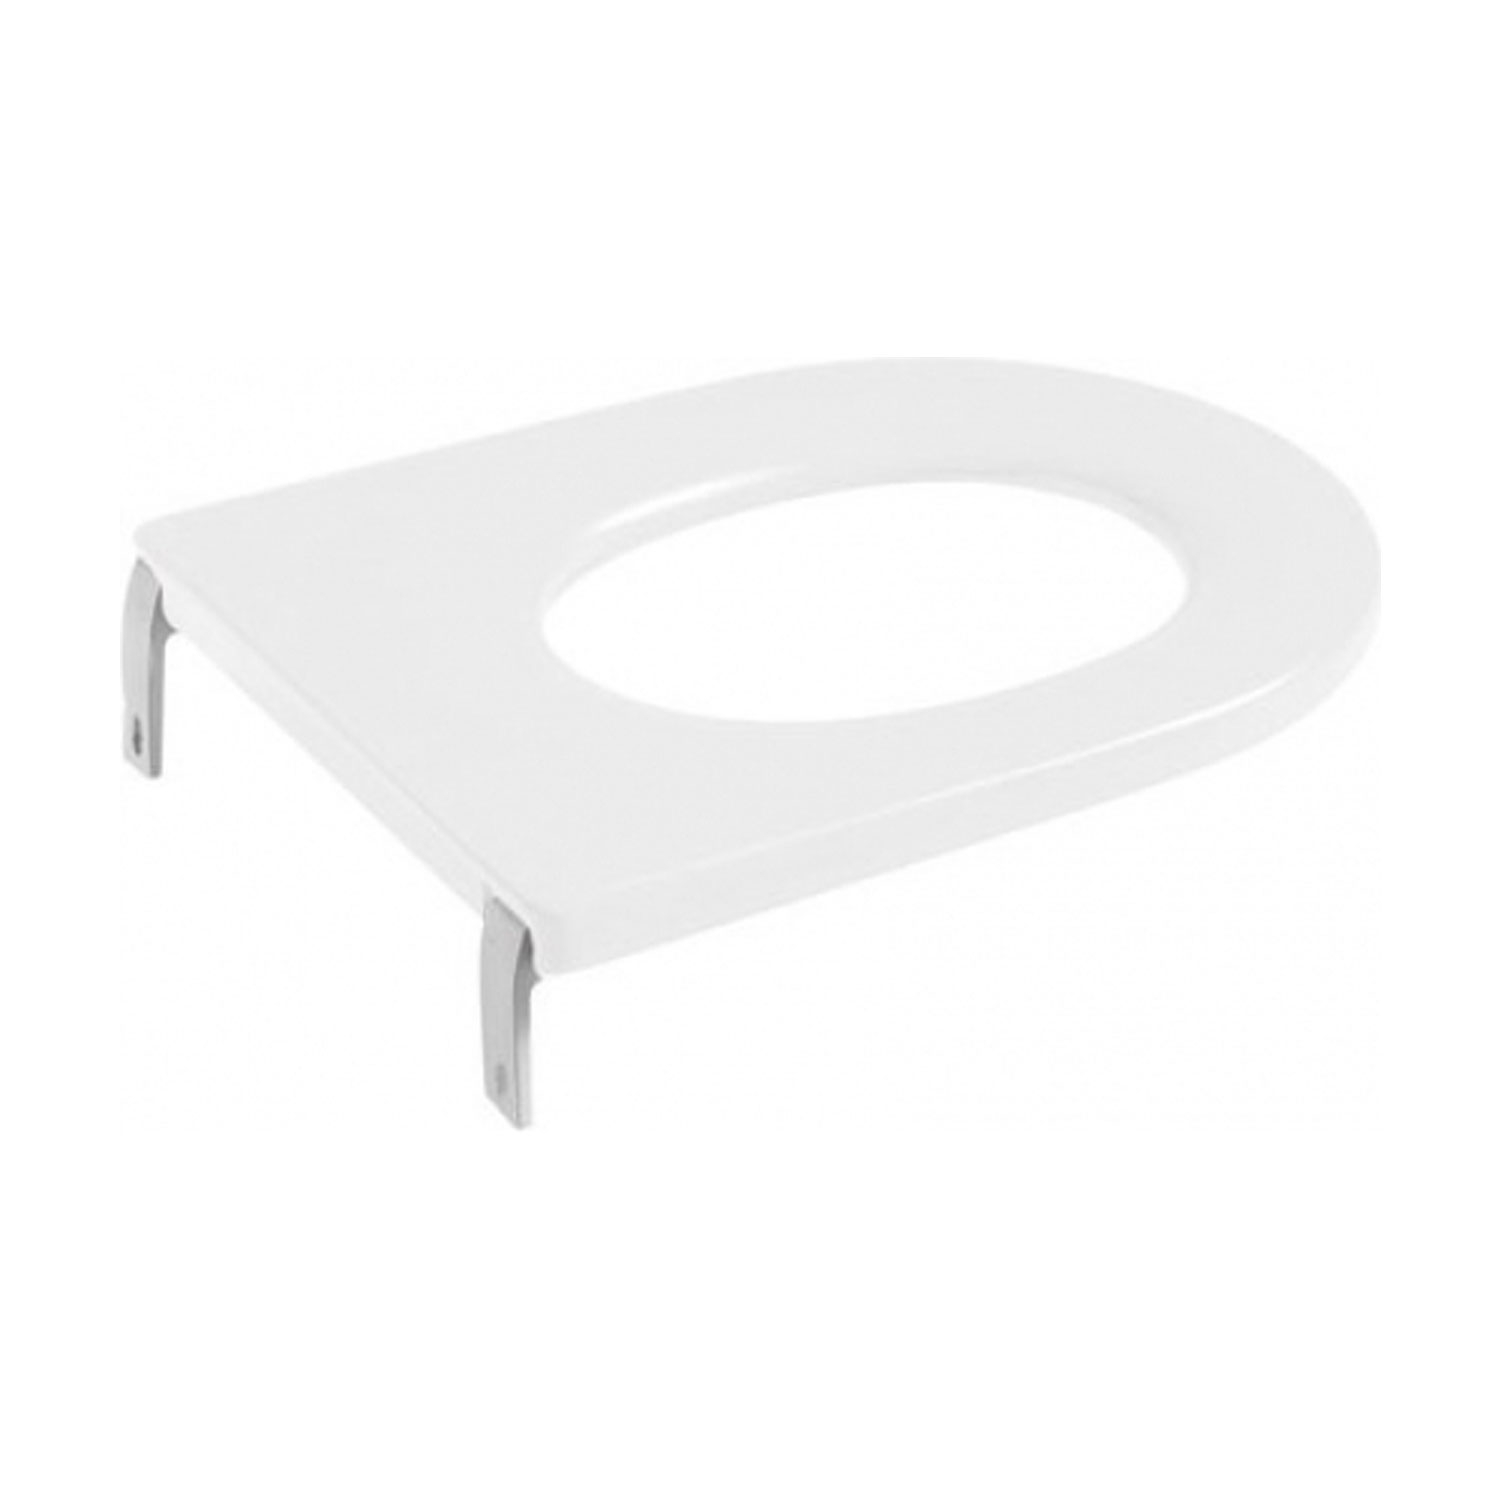 Roca Happening Floor-standing Toilet for Kids 415mm Projection - White Seat